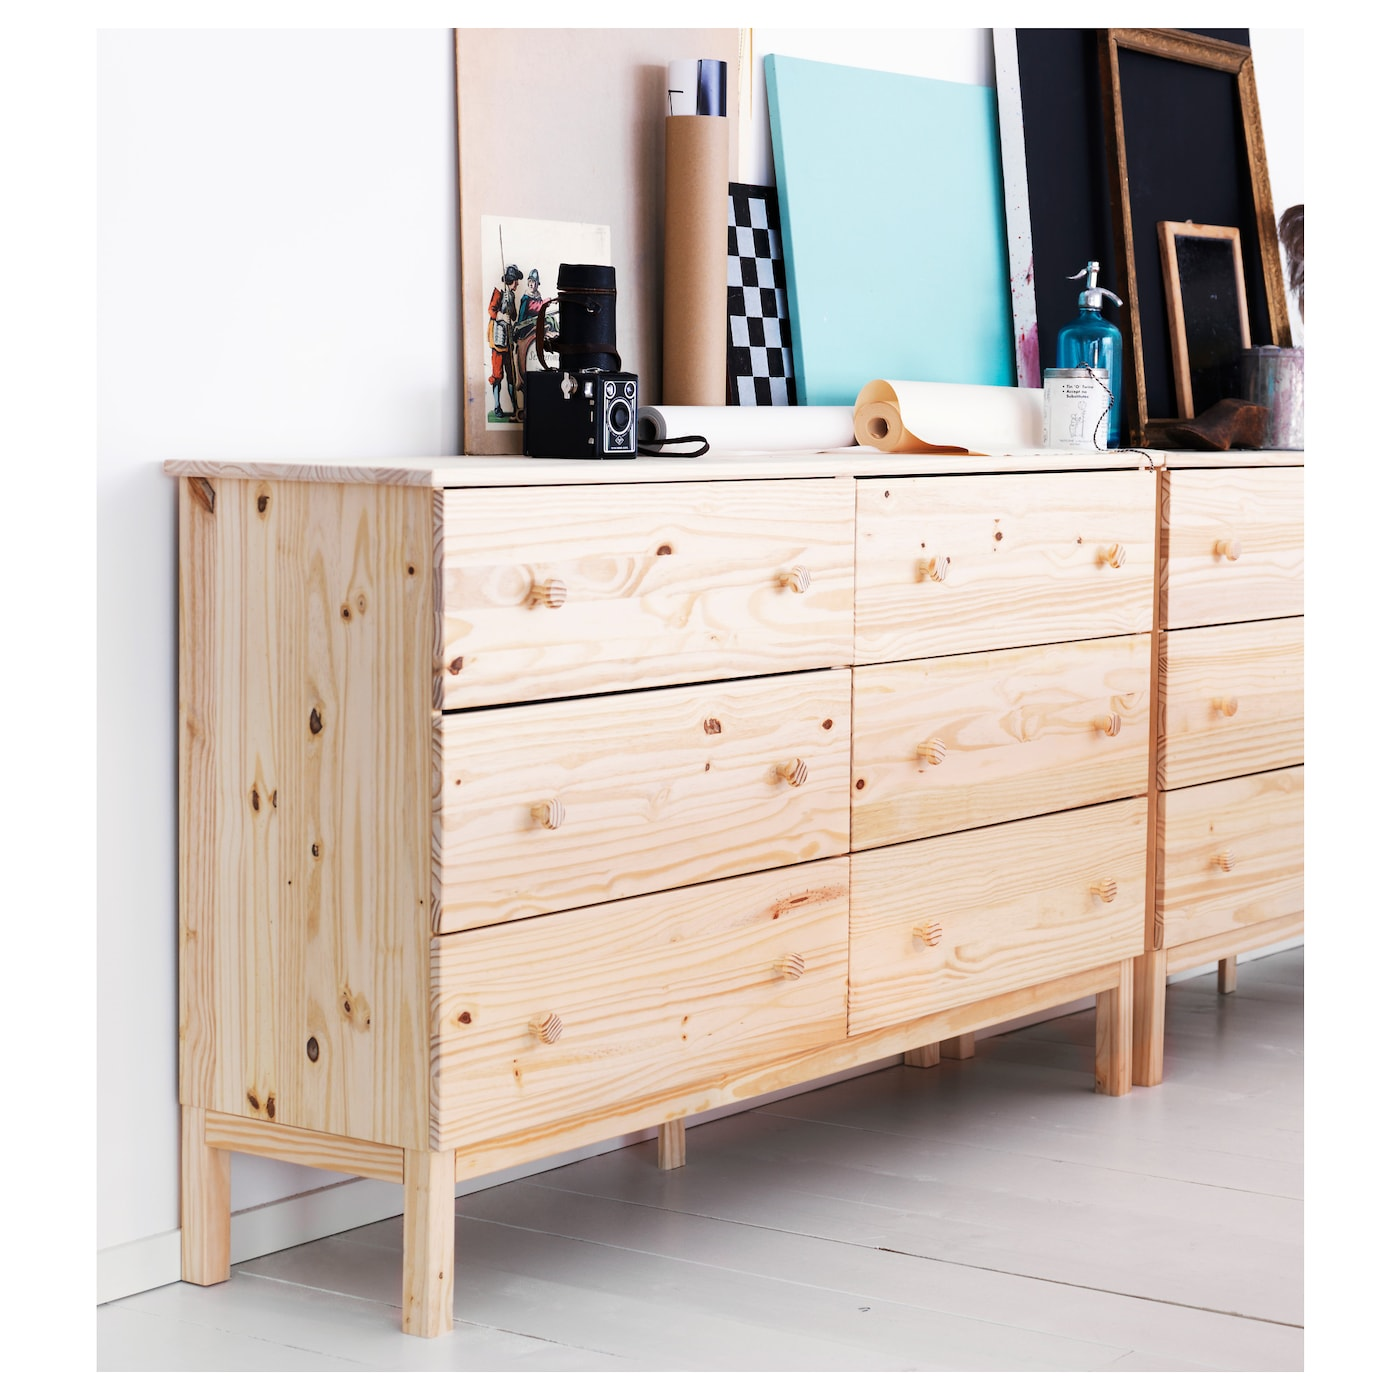 IKEA TARVA chest of 6 drawers Made of solid wood, which is a hardwearing and warm natural material.